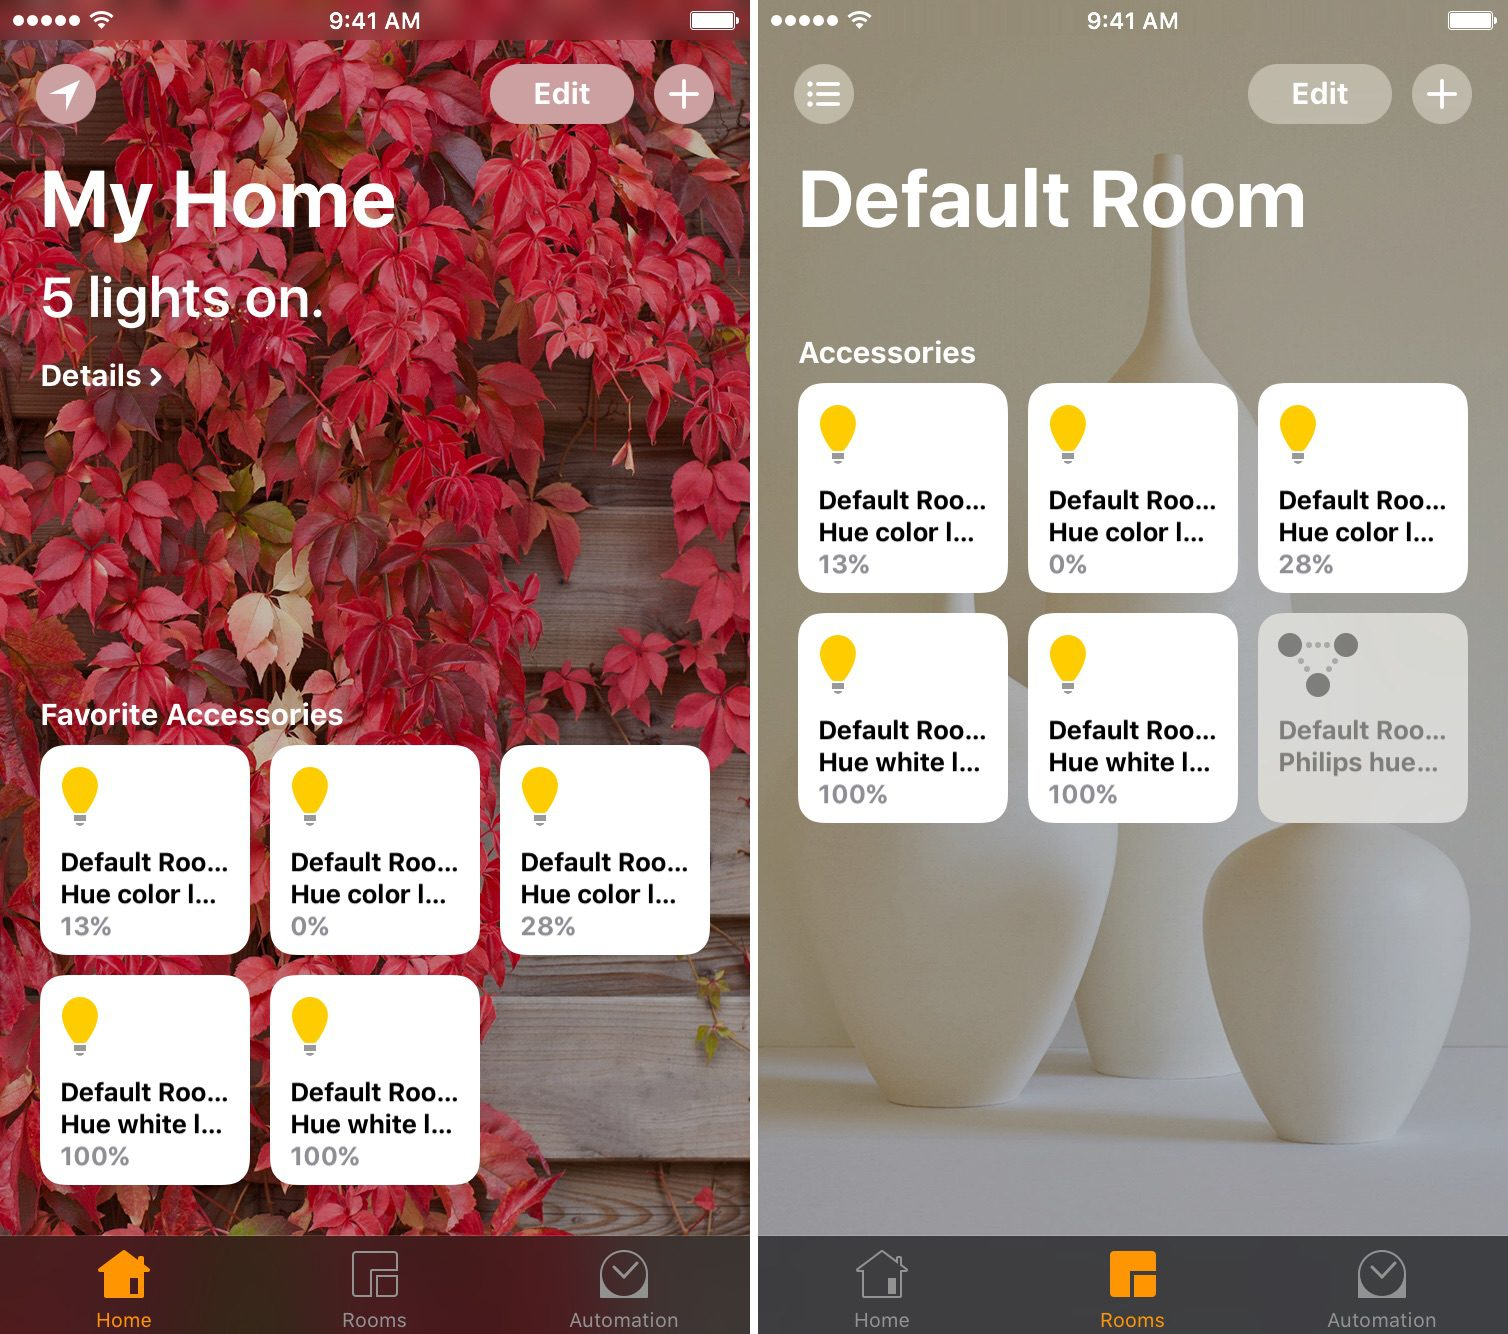 How To Add Accessories Home App How To Use Home App On Iphone & Ipad For